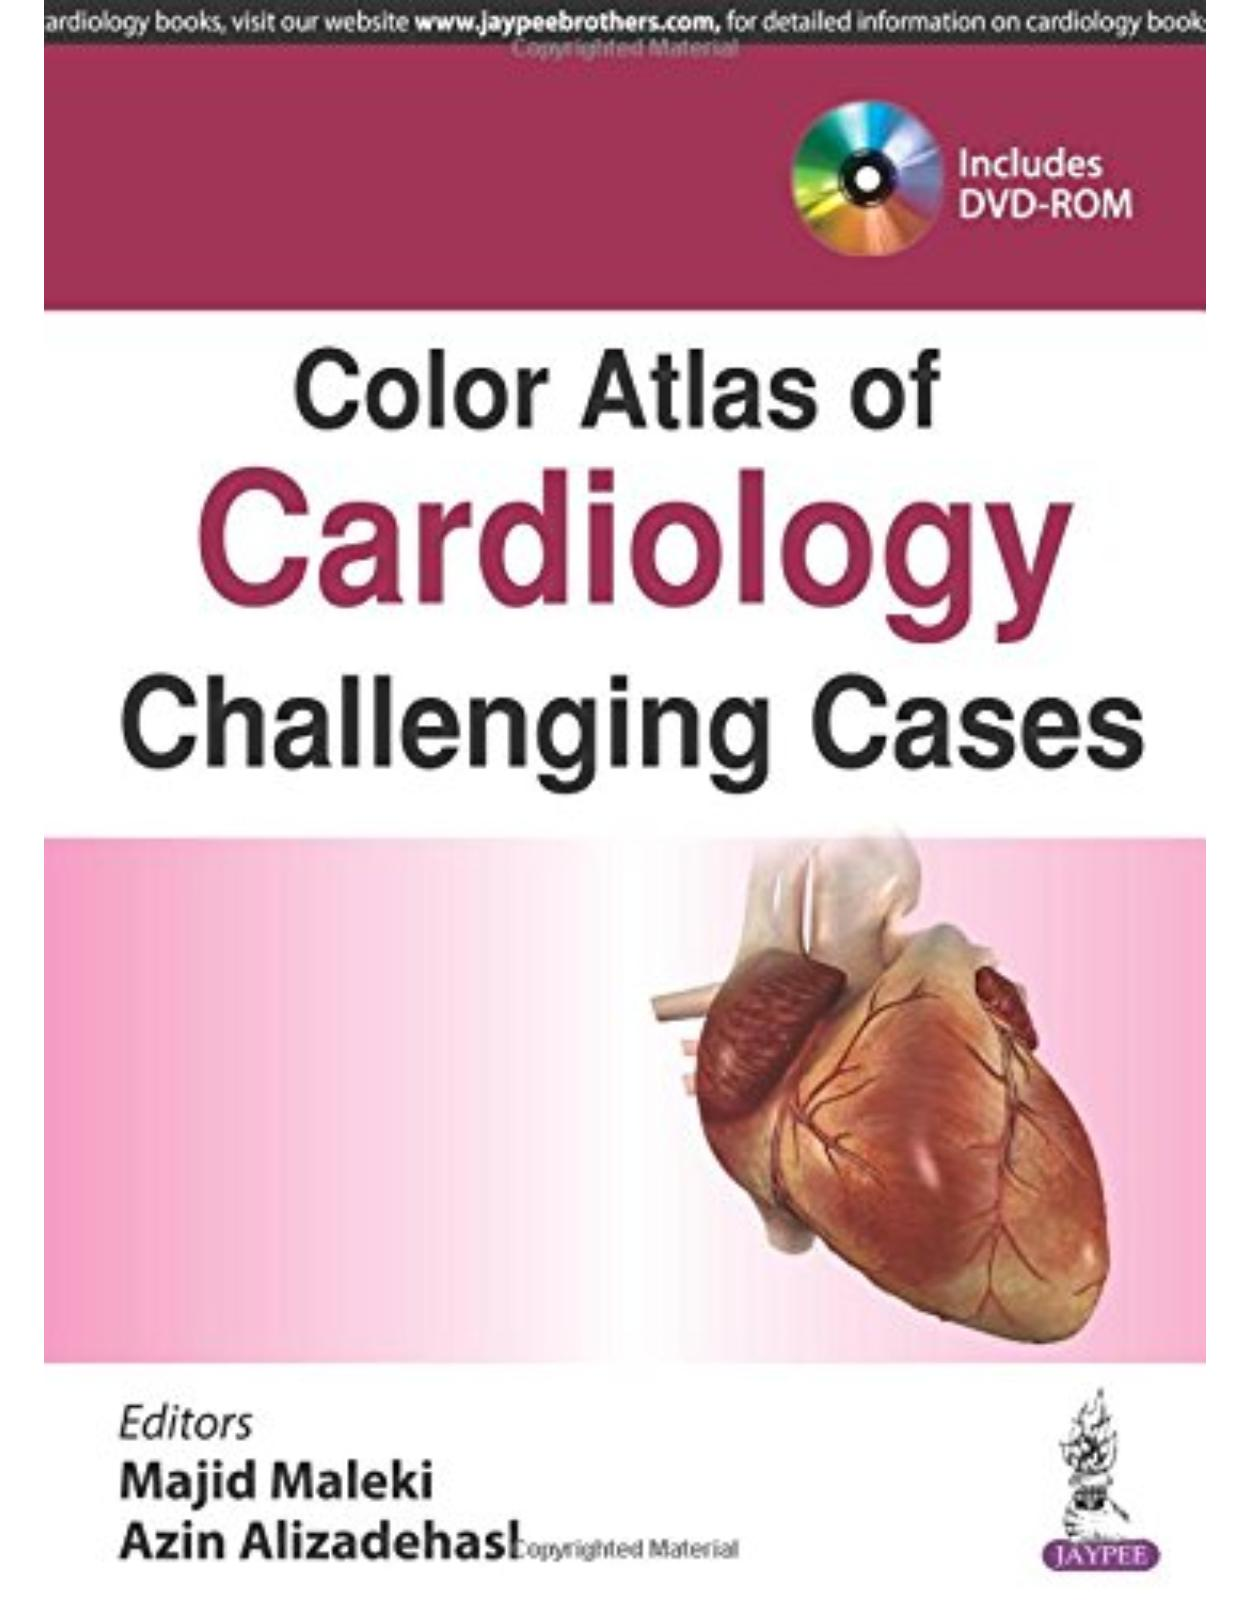 Color Atlas of Cardiology: Challenging Cases